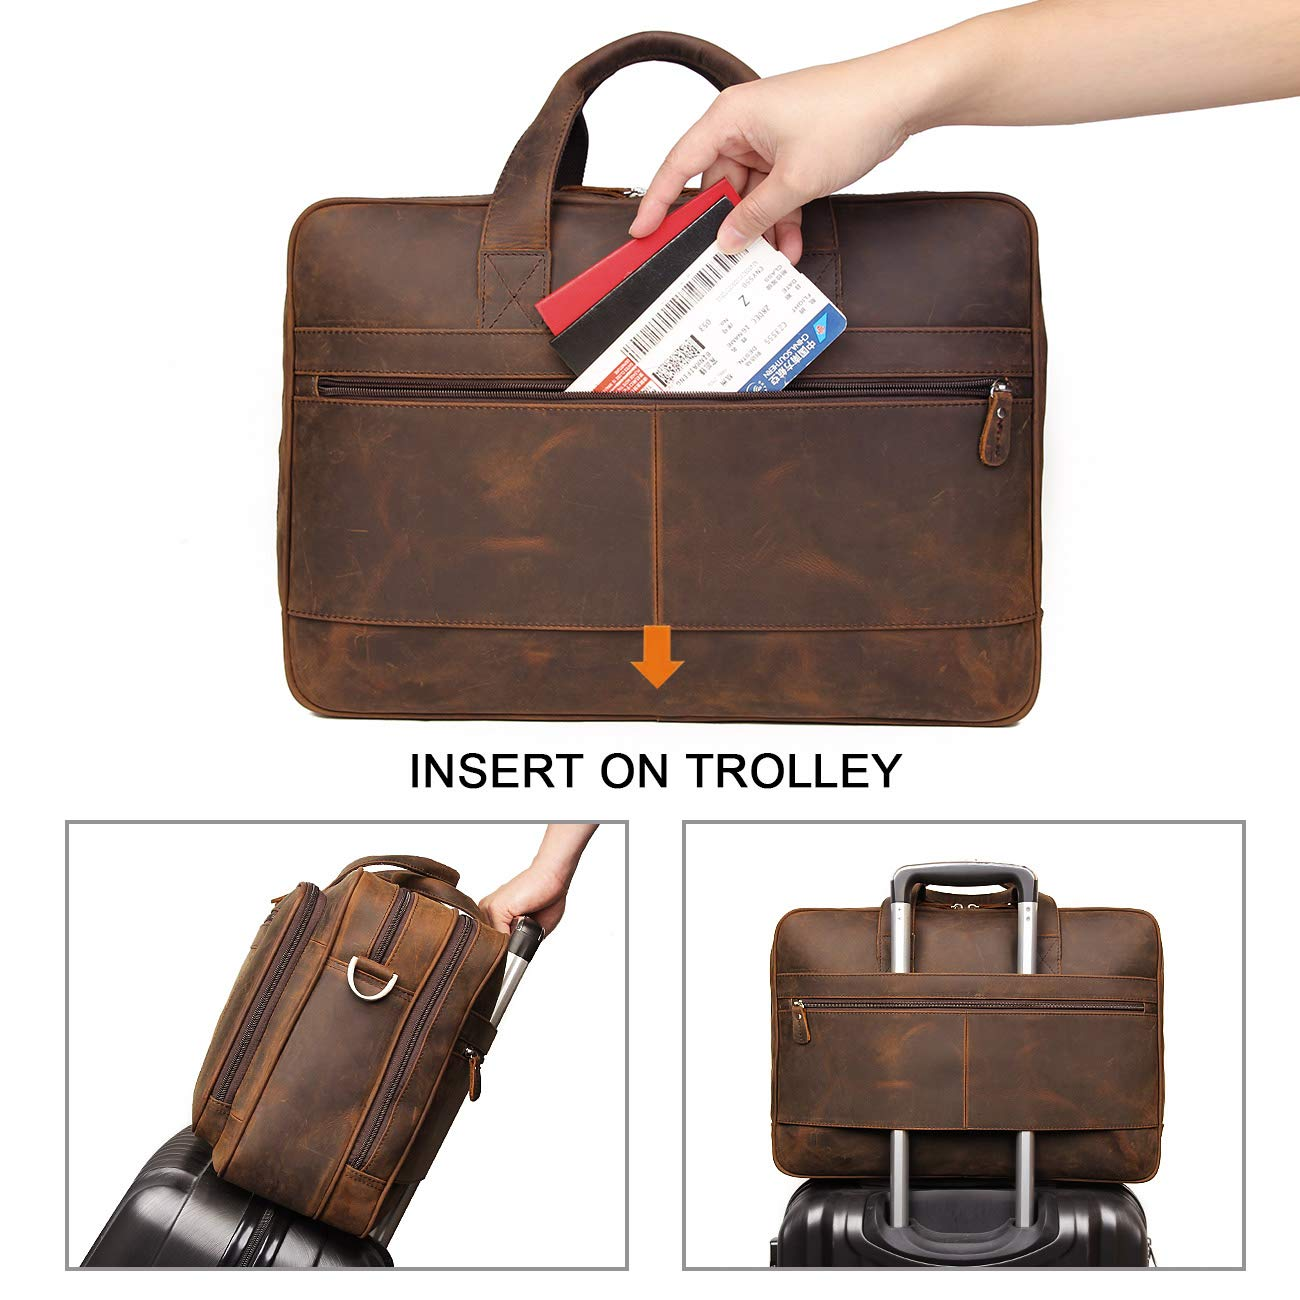 Augus Business Travel Briefcase Genuine Leather Duffel Bags for Men Laptop Bag fits 15.6 inches Laptop (Dark brown) by Augus (Image #6)